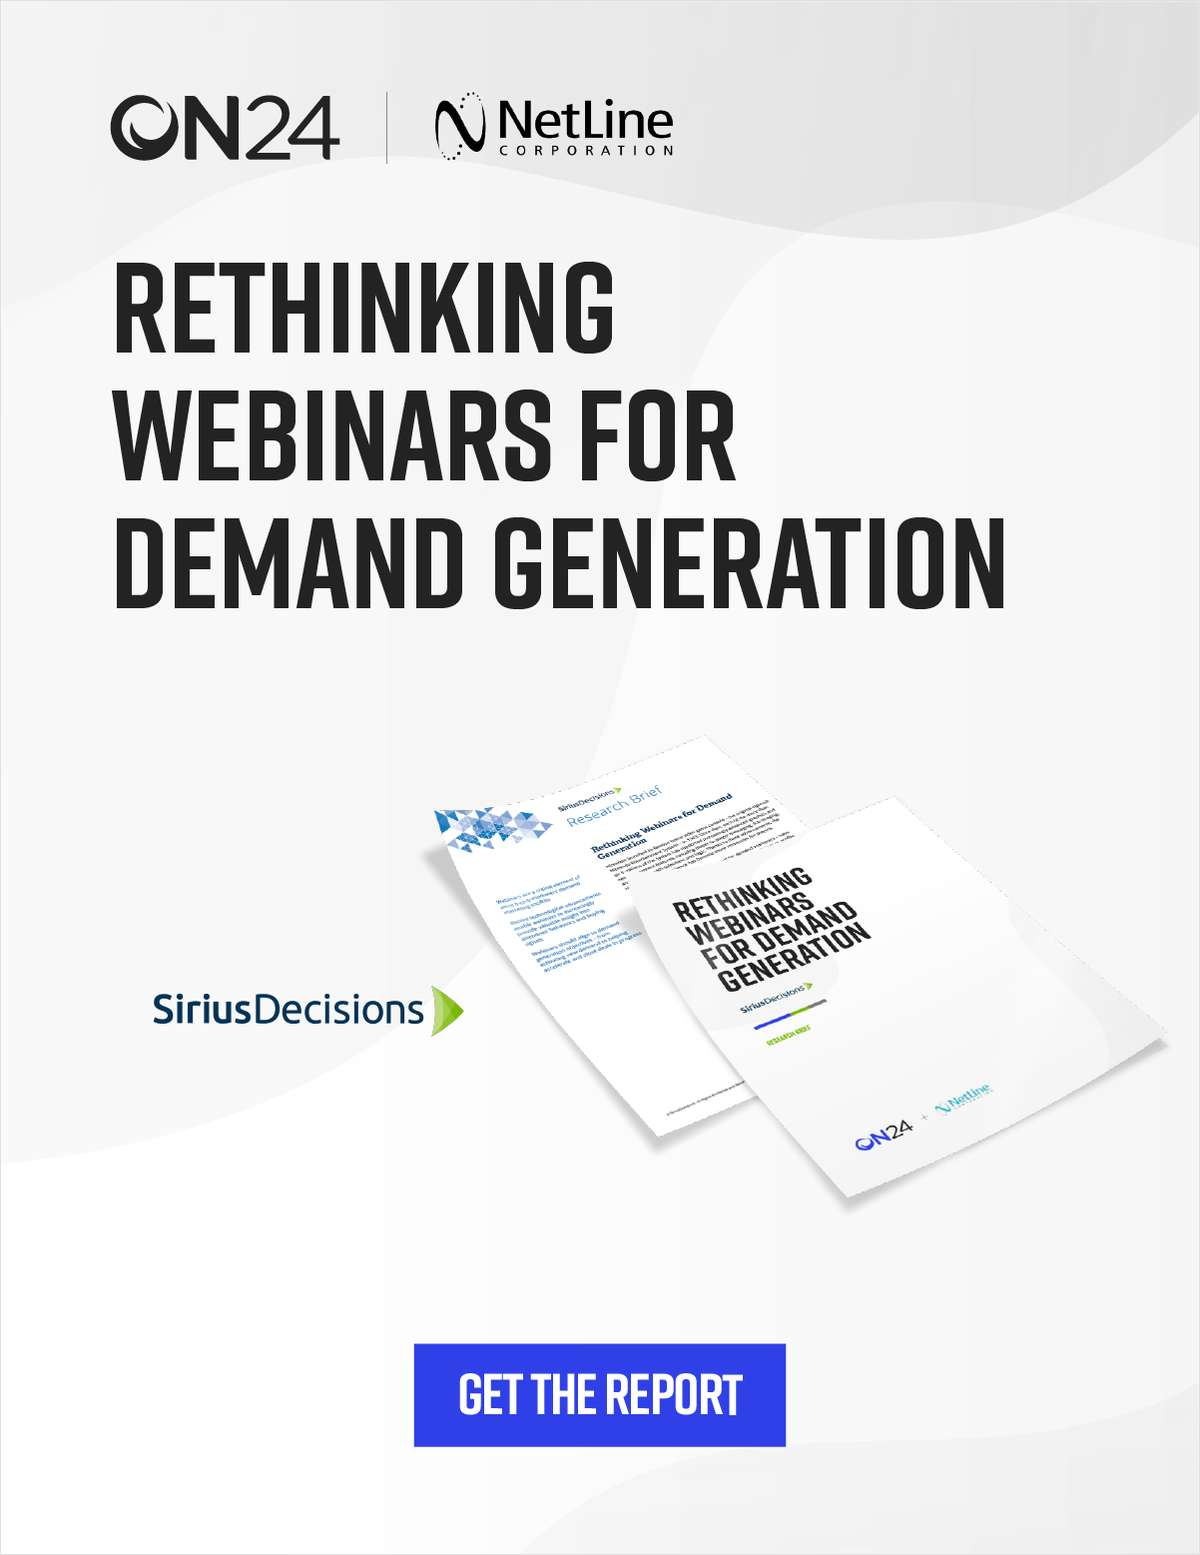 SiriusDecisions Report: Rethinking Webinars for Demand Generation